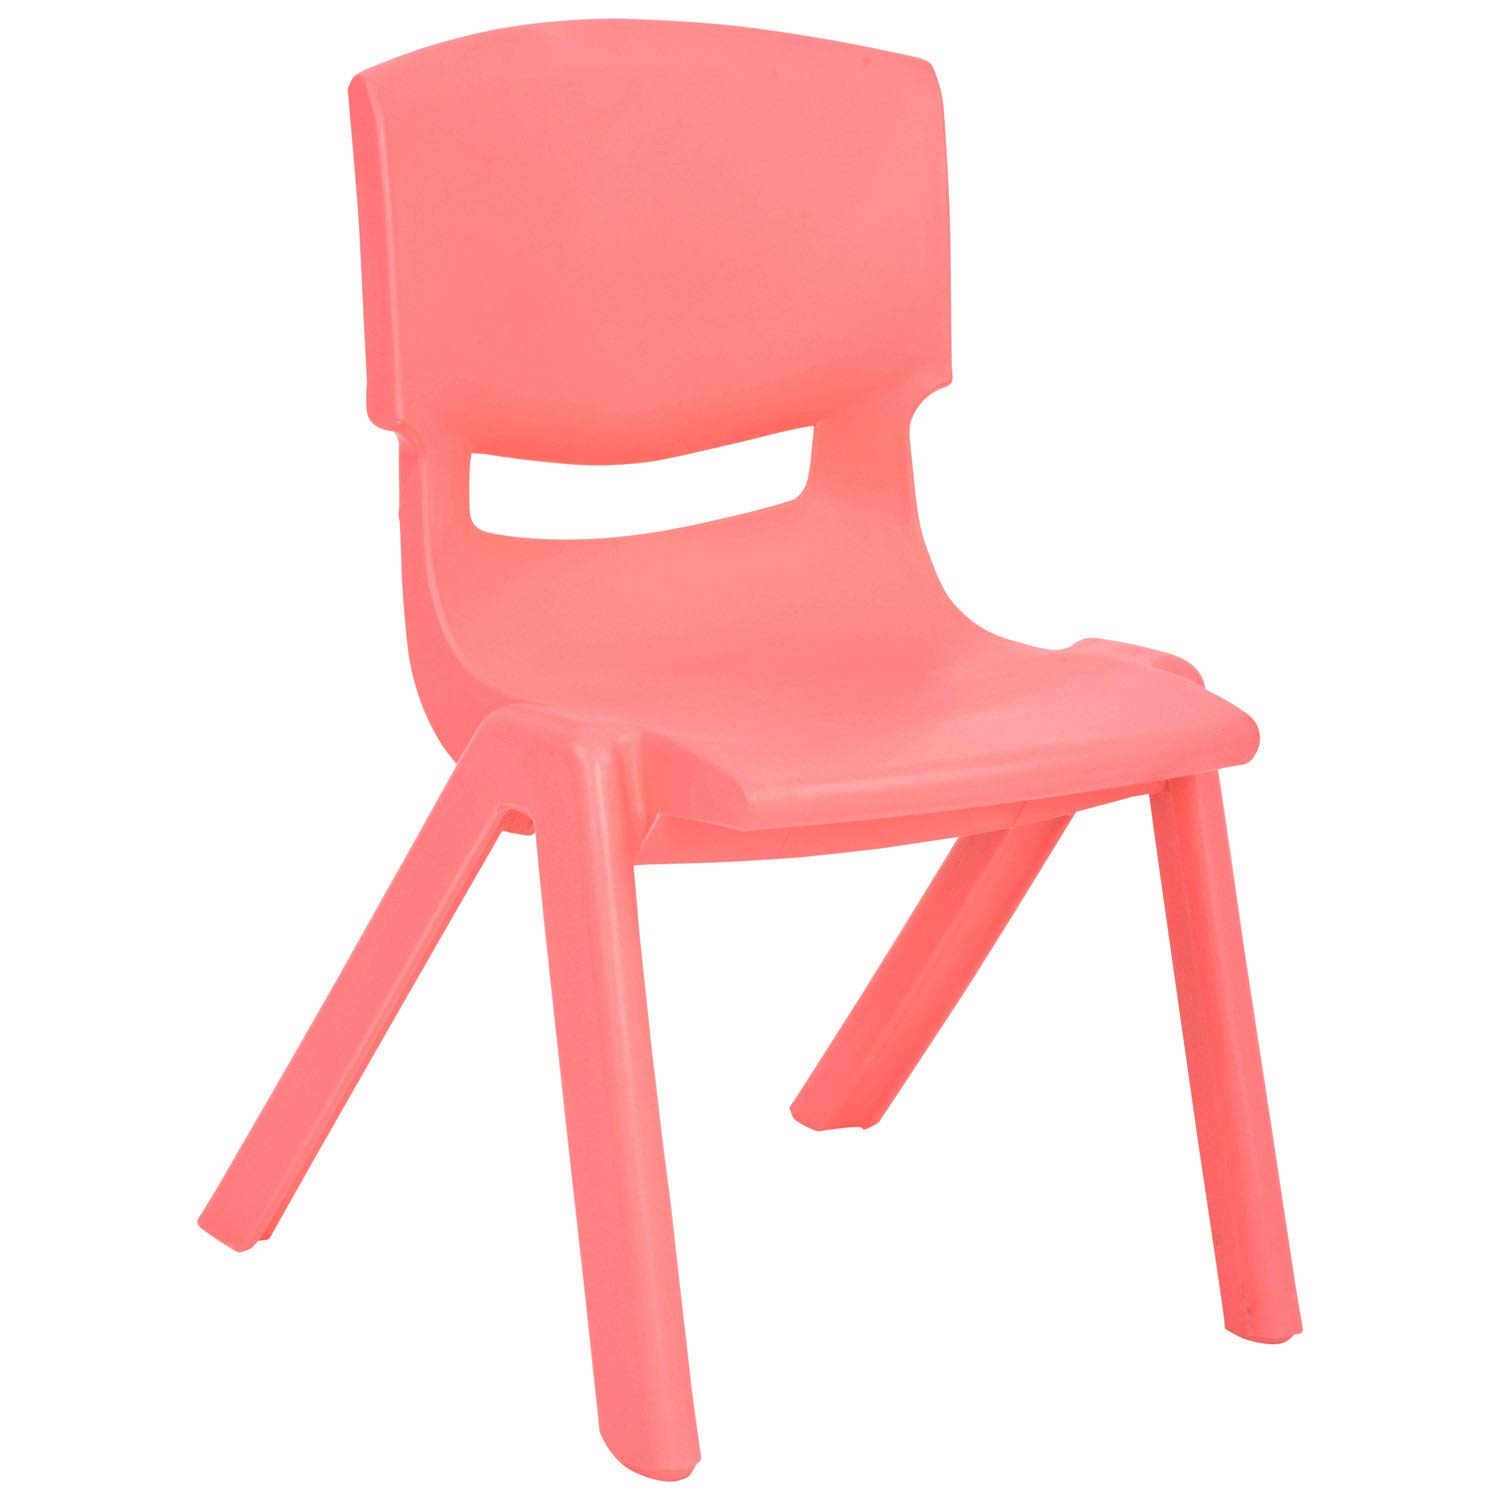 JOON Stackable Plastic Kids Learning Chairs, 20.8x12.5 Inches, The Perfect Chair for Playrooms, Schools, Daycares and Home (Coral)